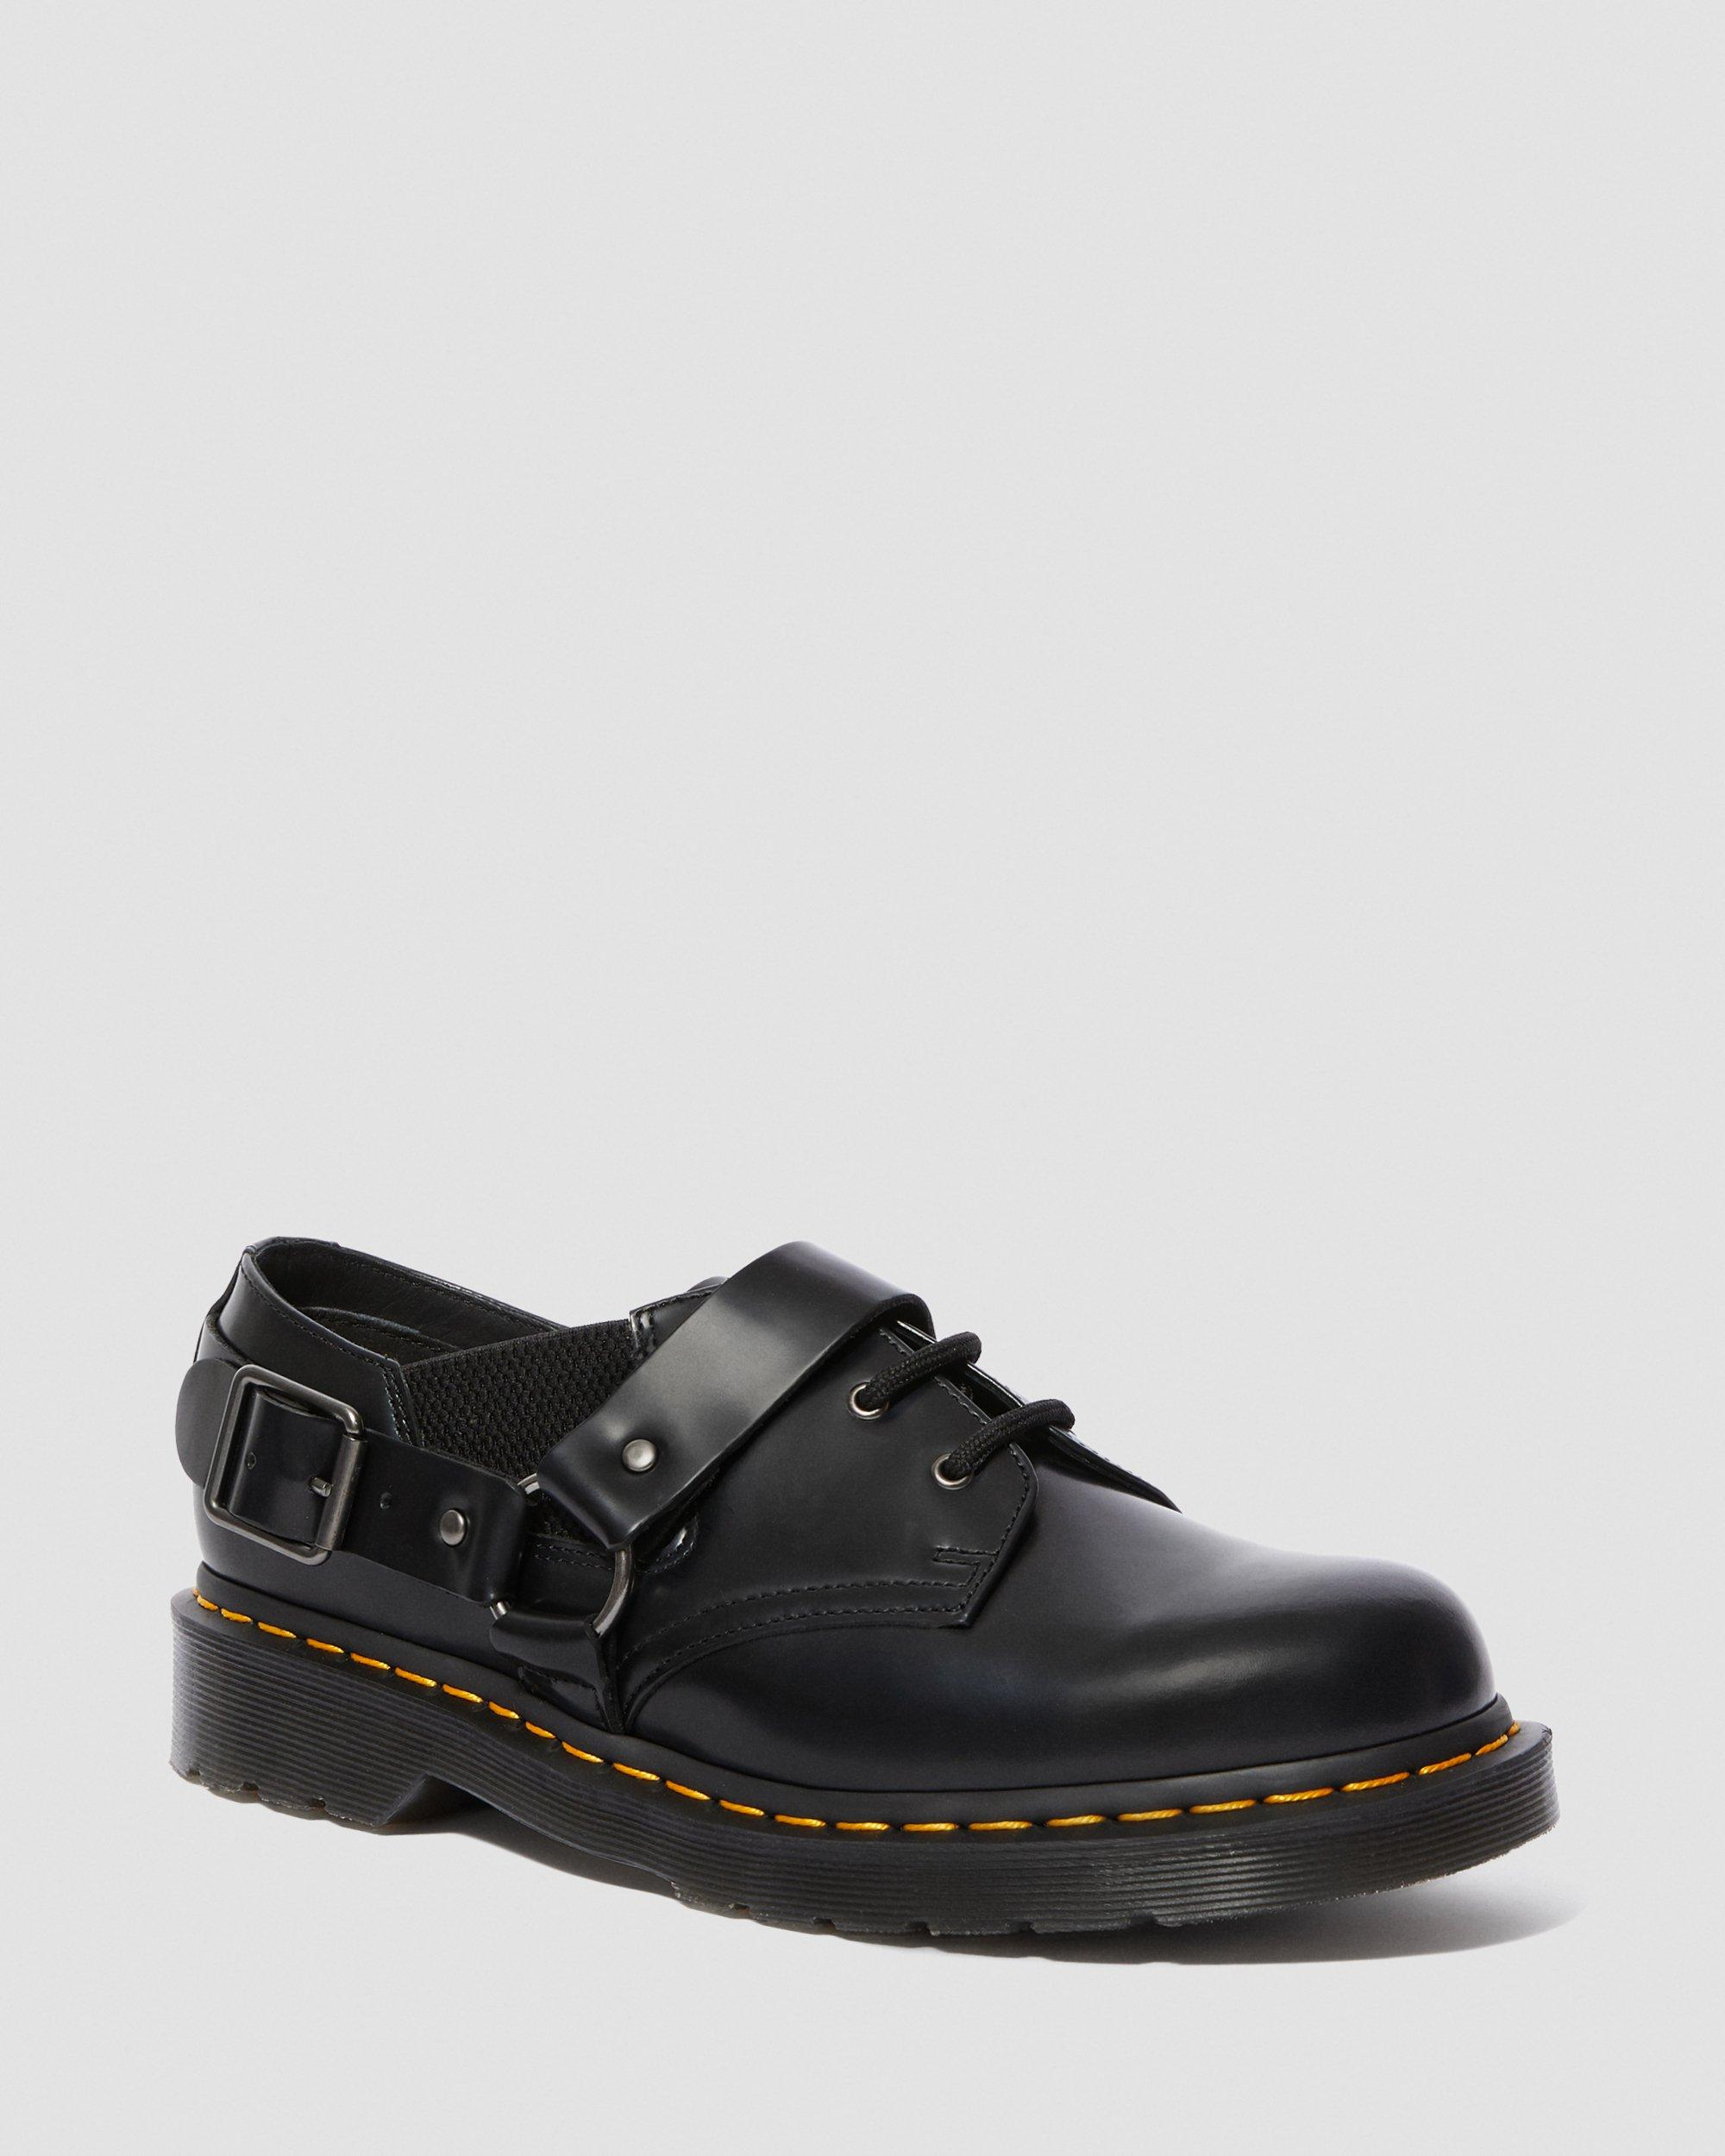 FULMAR SMOOTH LEATHER BUCKLE SHOES   Dr